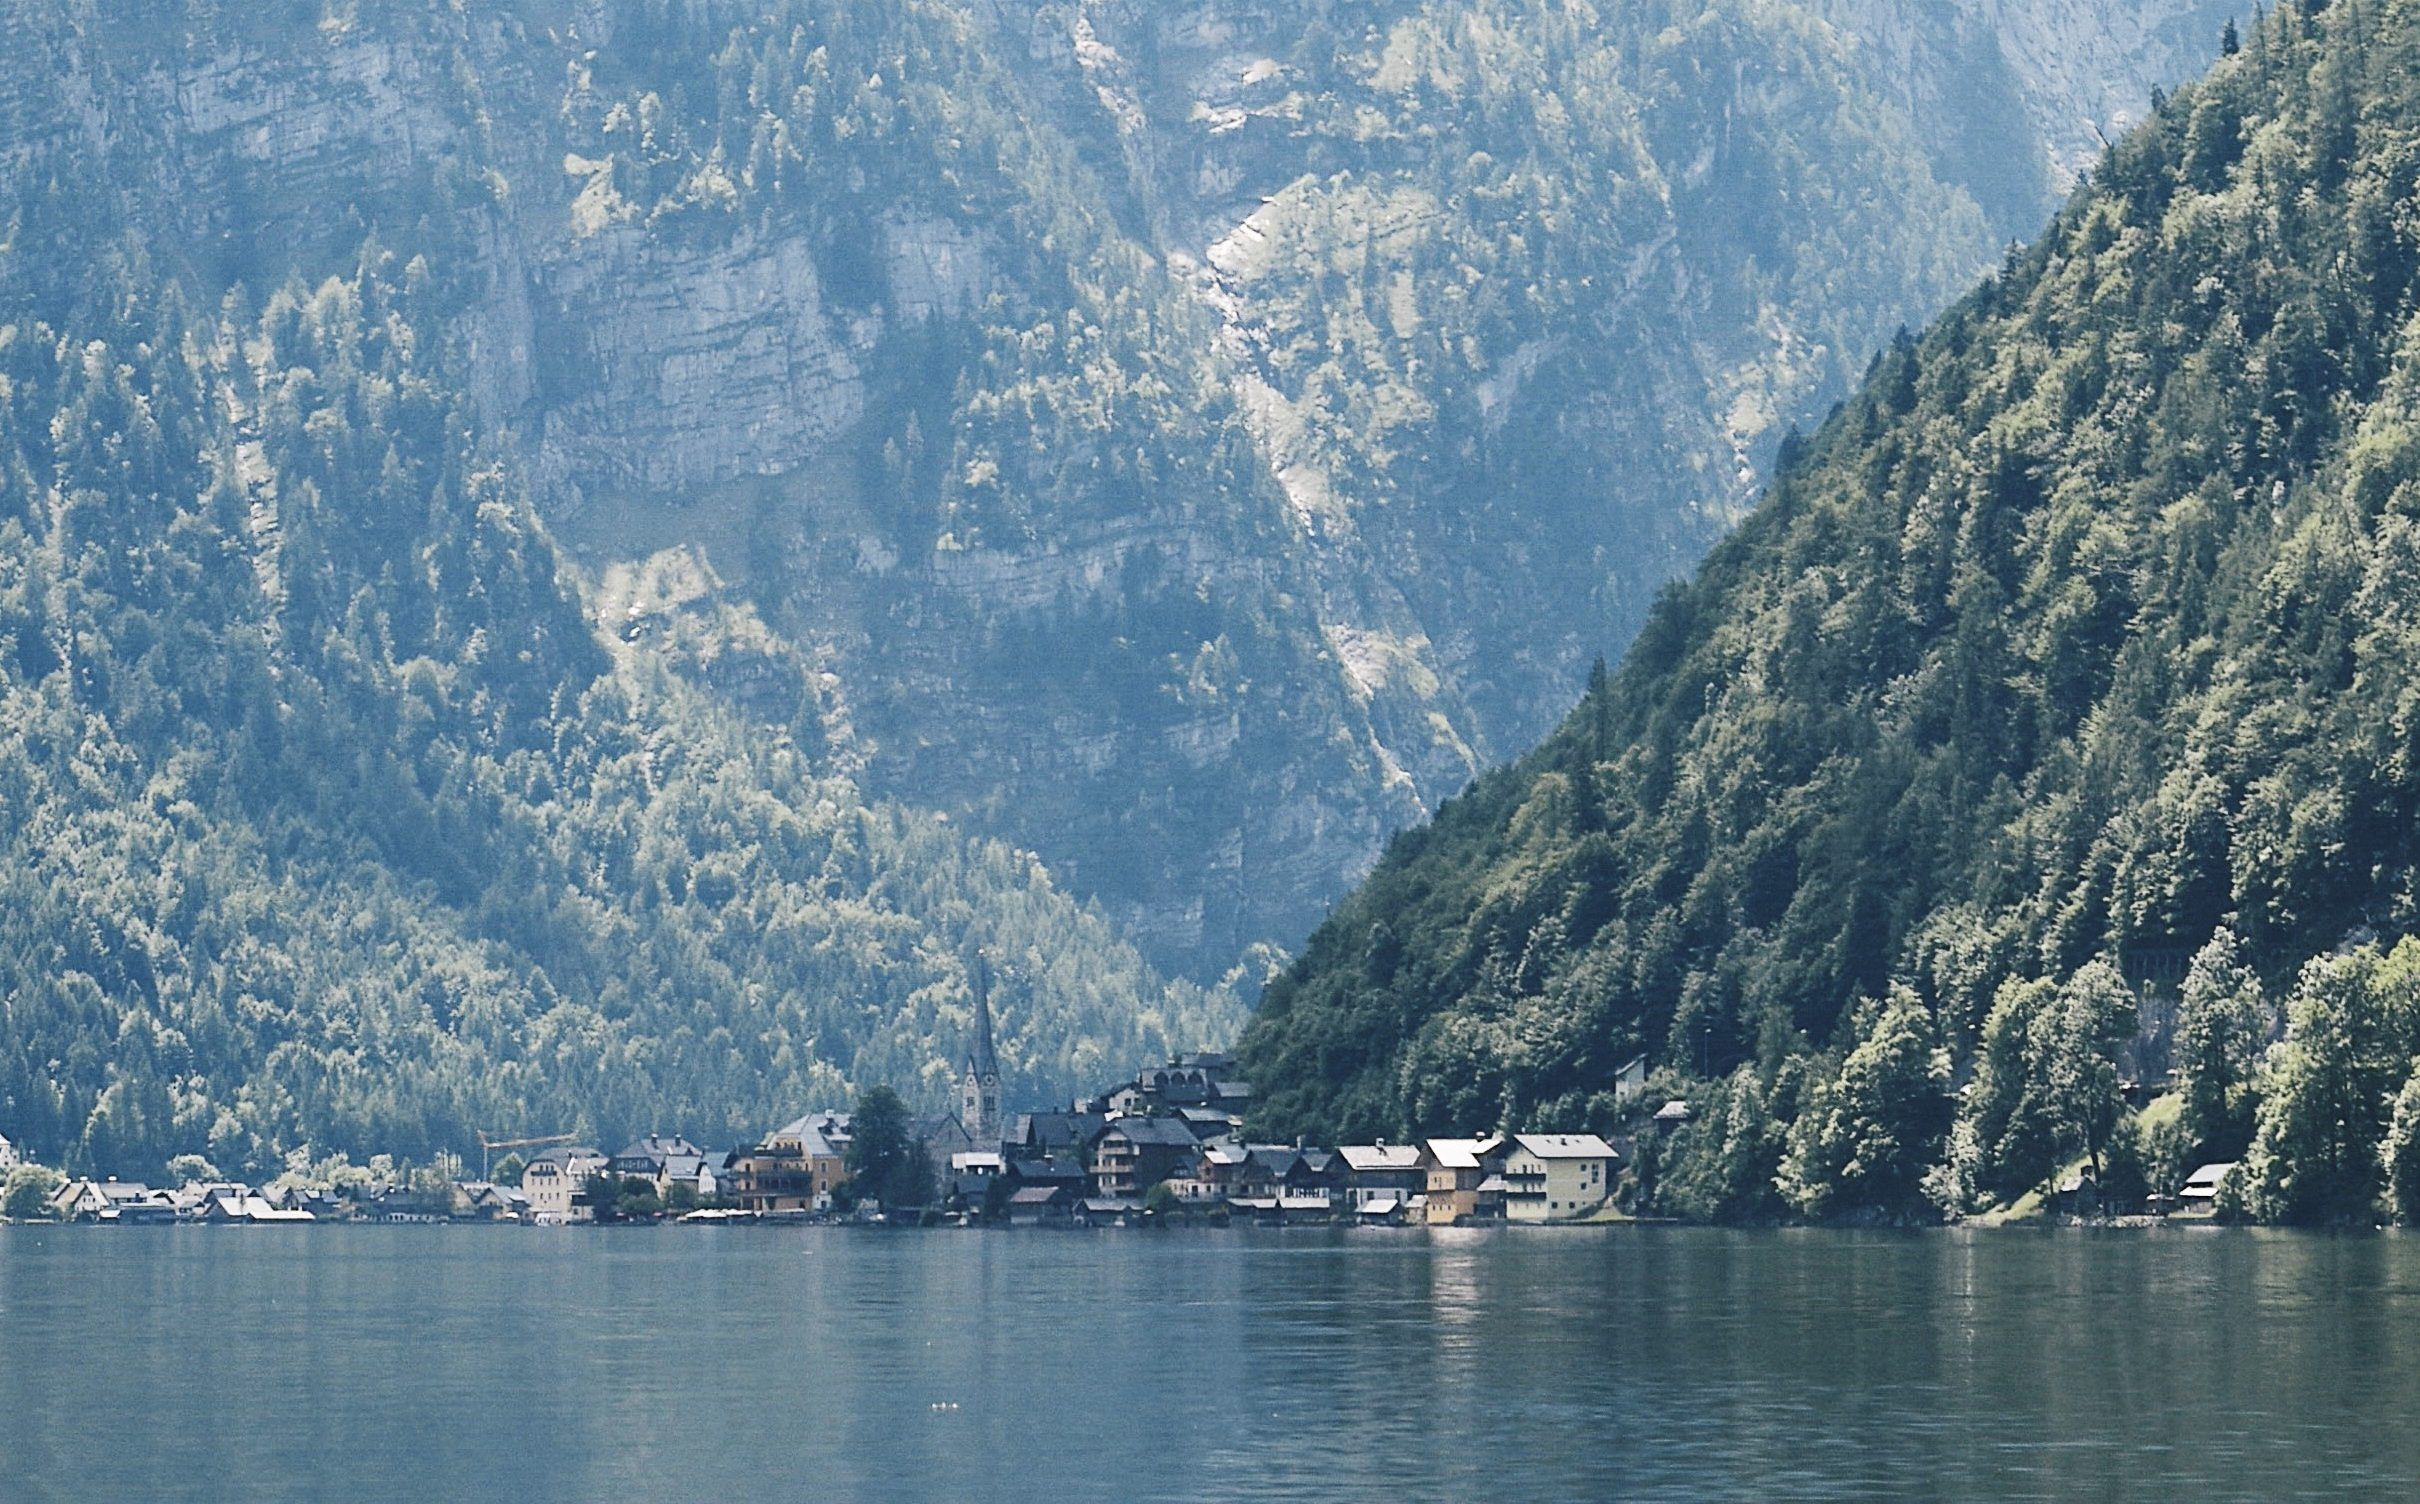 Best way to see Hallstatt is from the middle of the lake